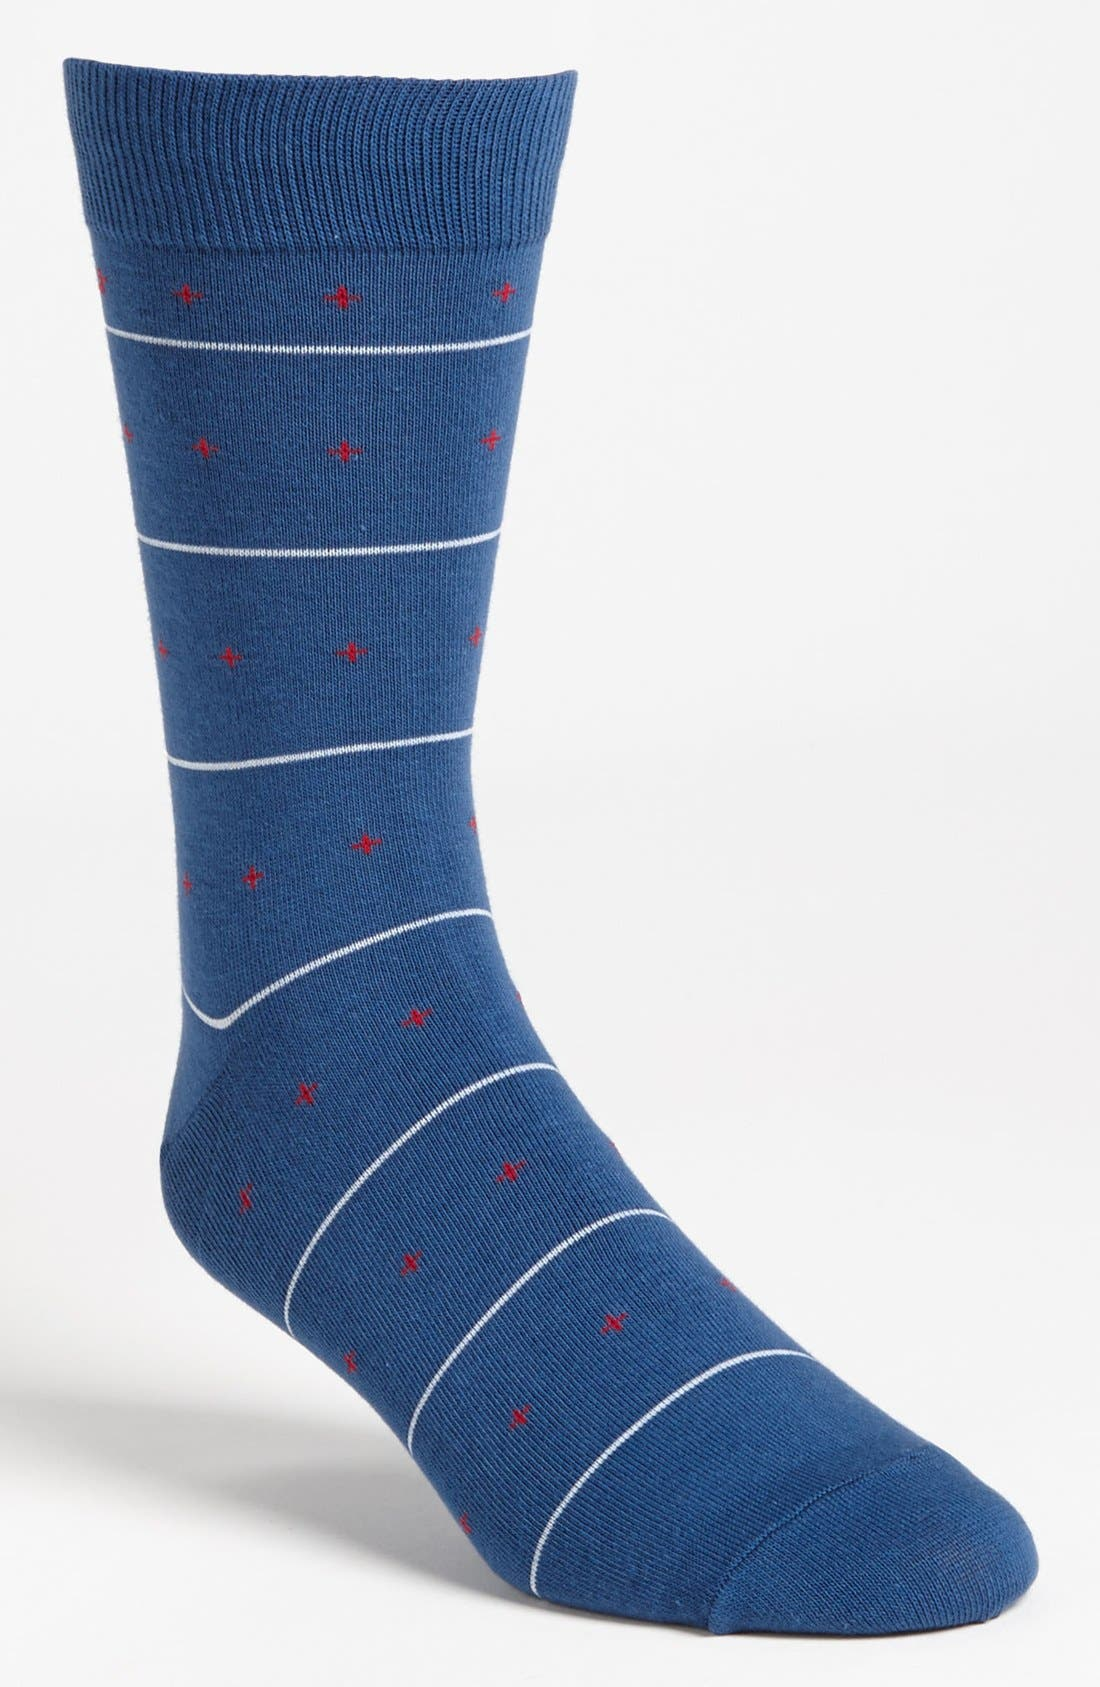 Alternate Image 1 Selected - Richer Poorer 'Tourist' Socks